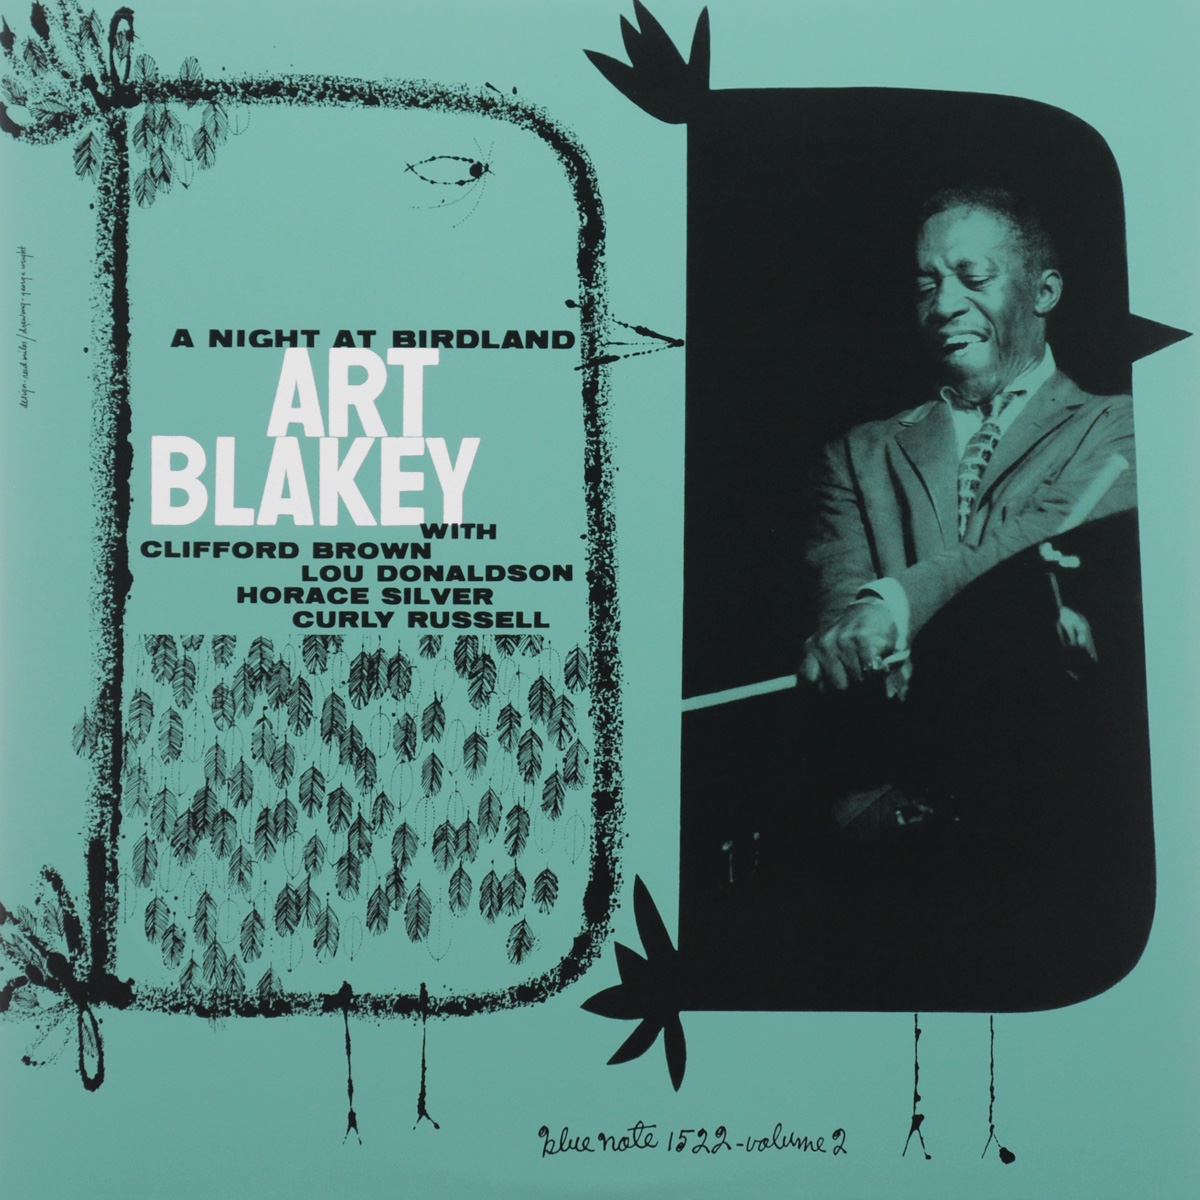 Art Blakey Quintet Art Blakey Quintet. A Night At Birdland. Volume 2 (LP) art blakey quintet art blakey quintet a night at birdland volume 2 lp